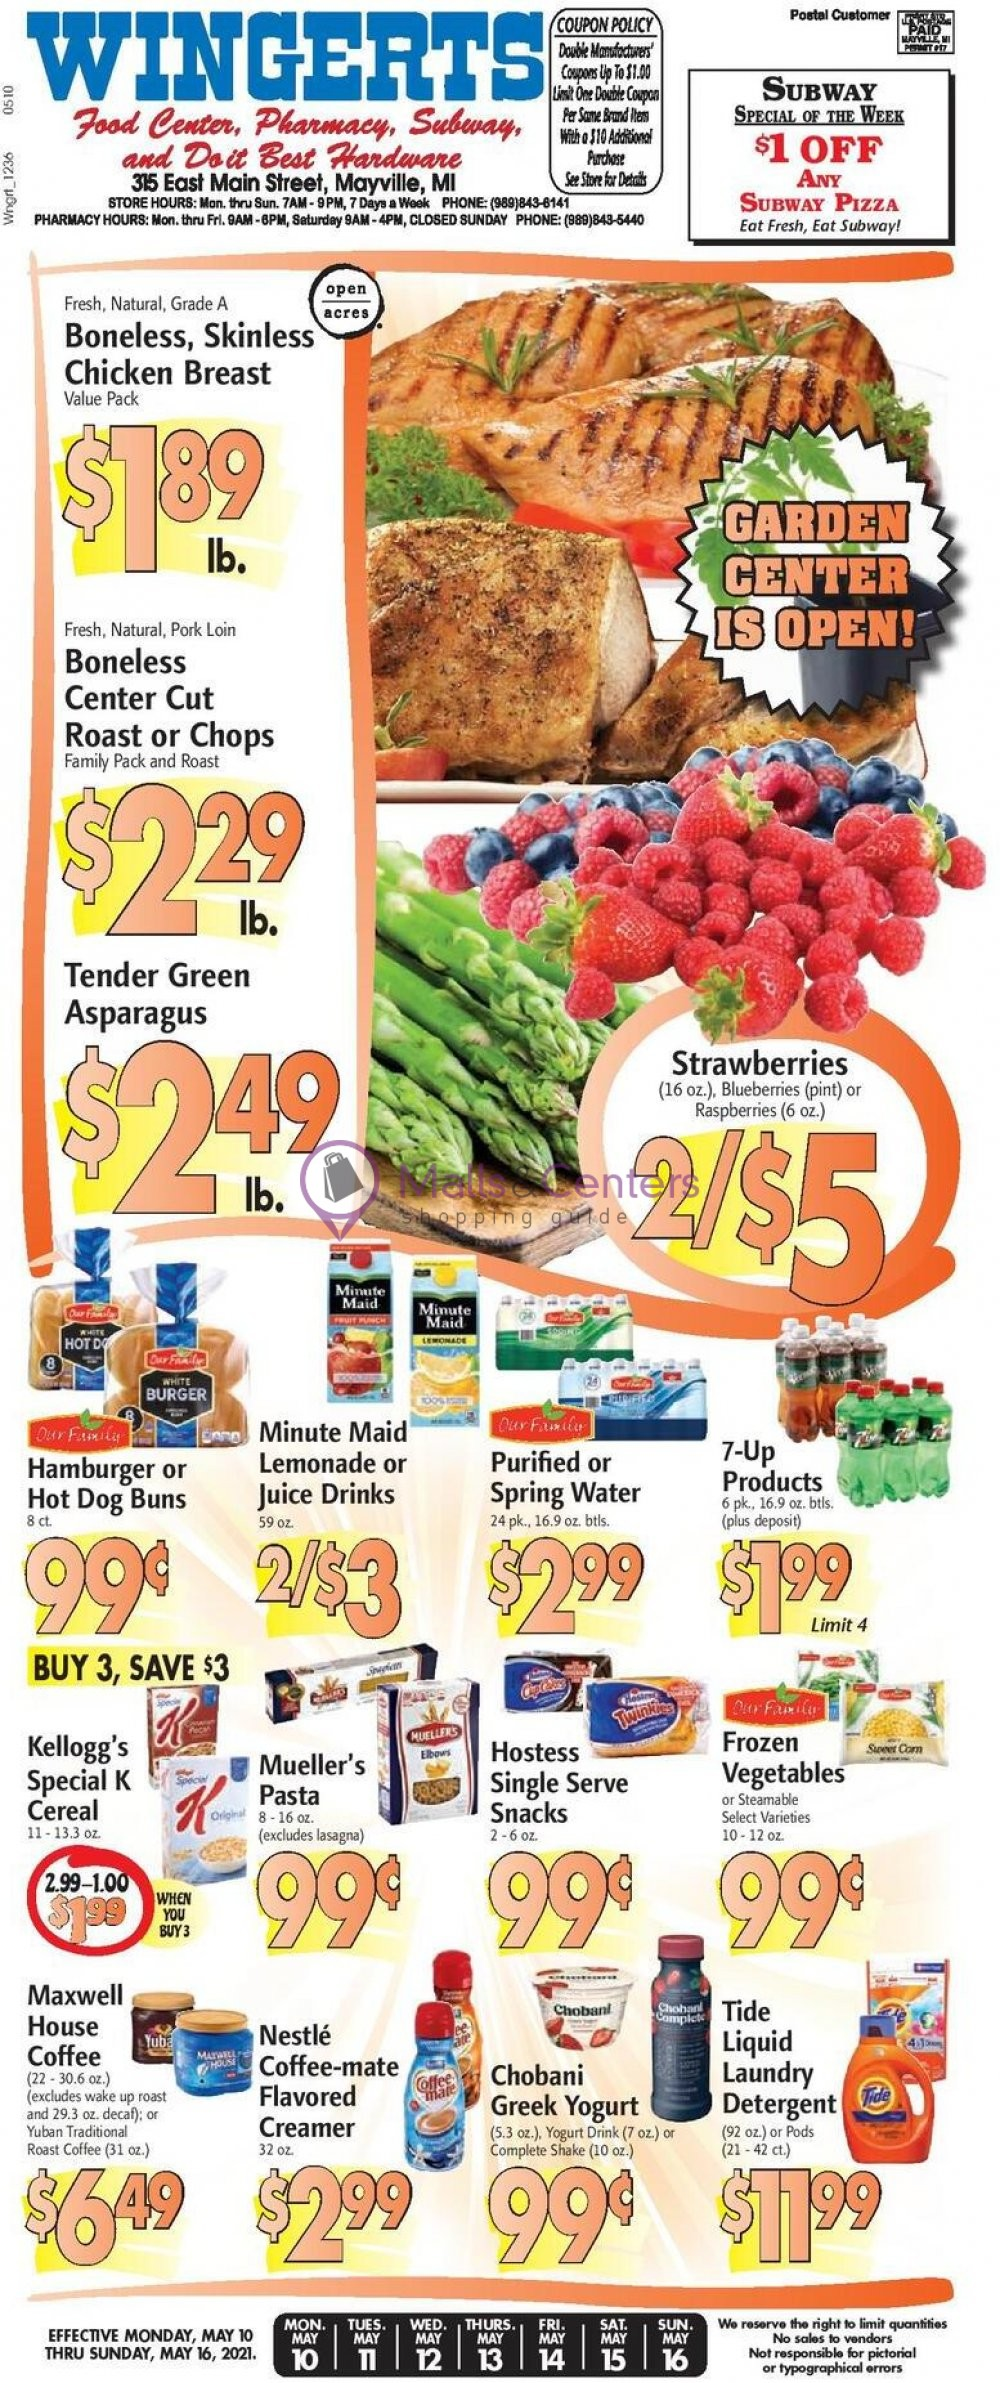 weekly ads Wingert's Food Center - page 1 - mallscenters.com